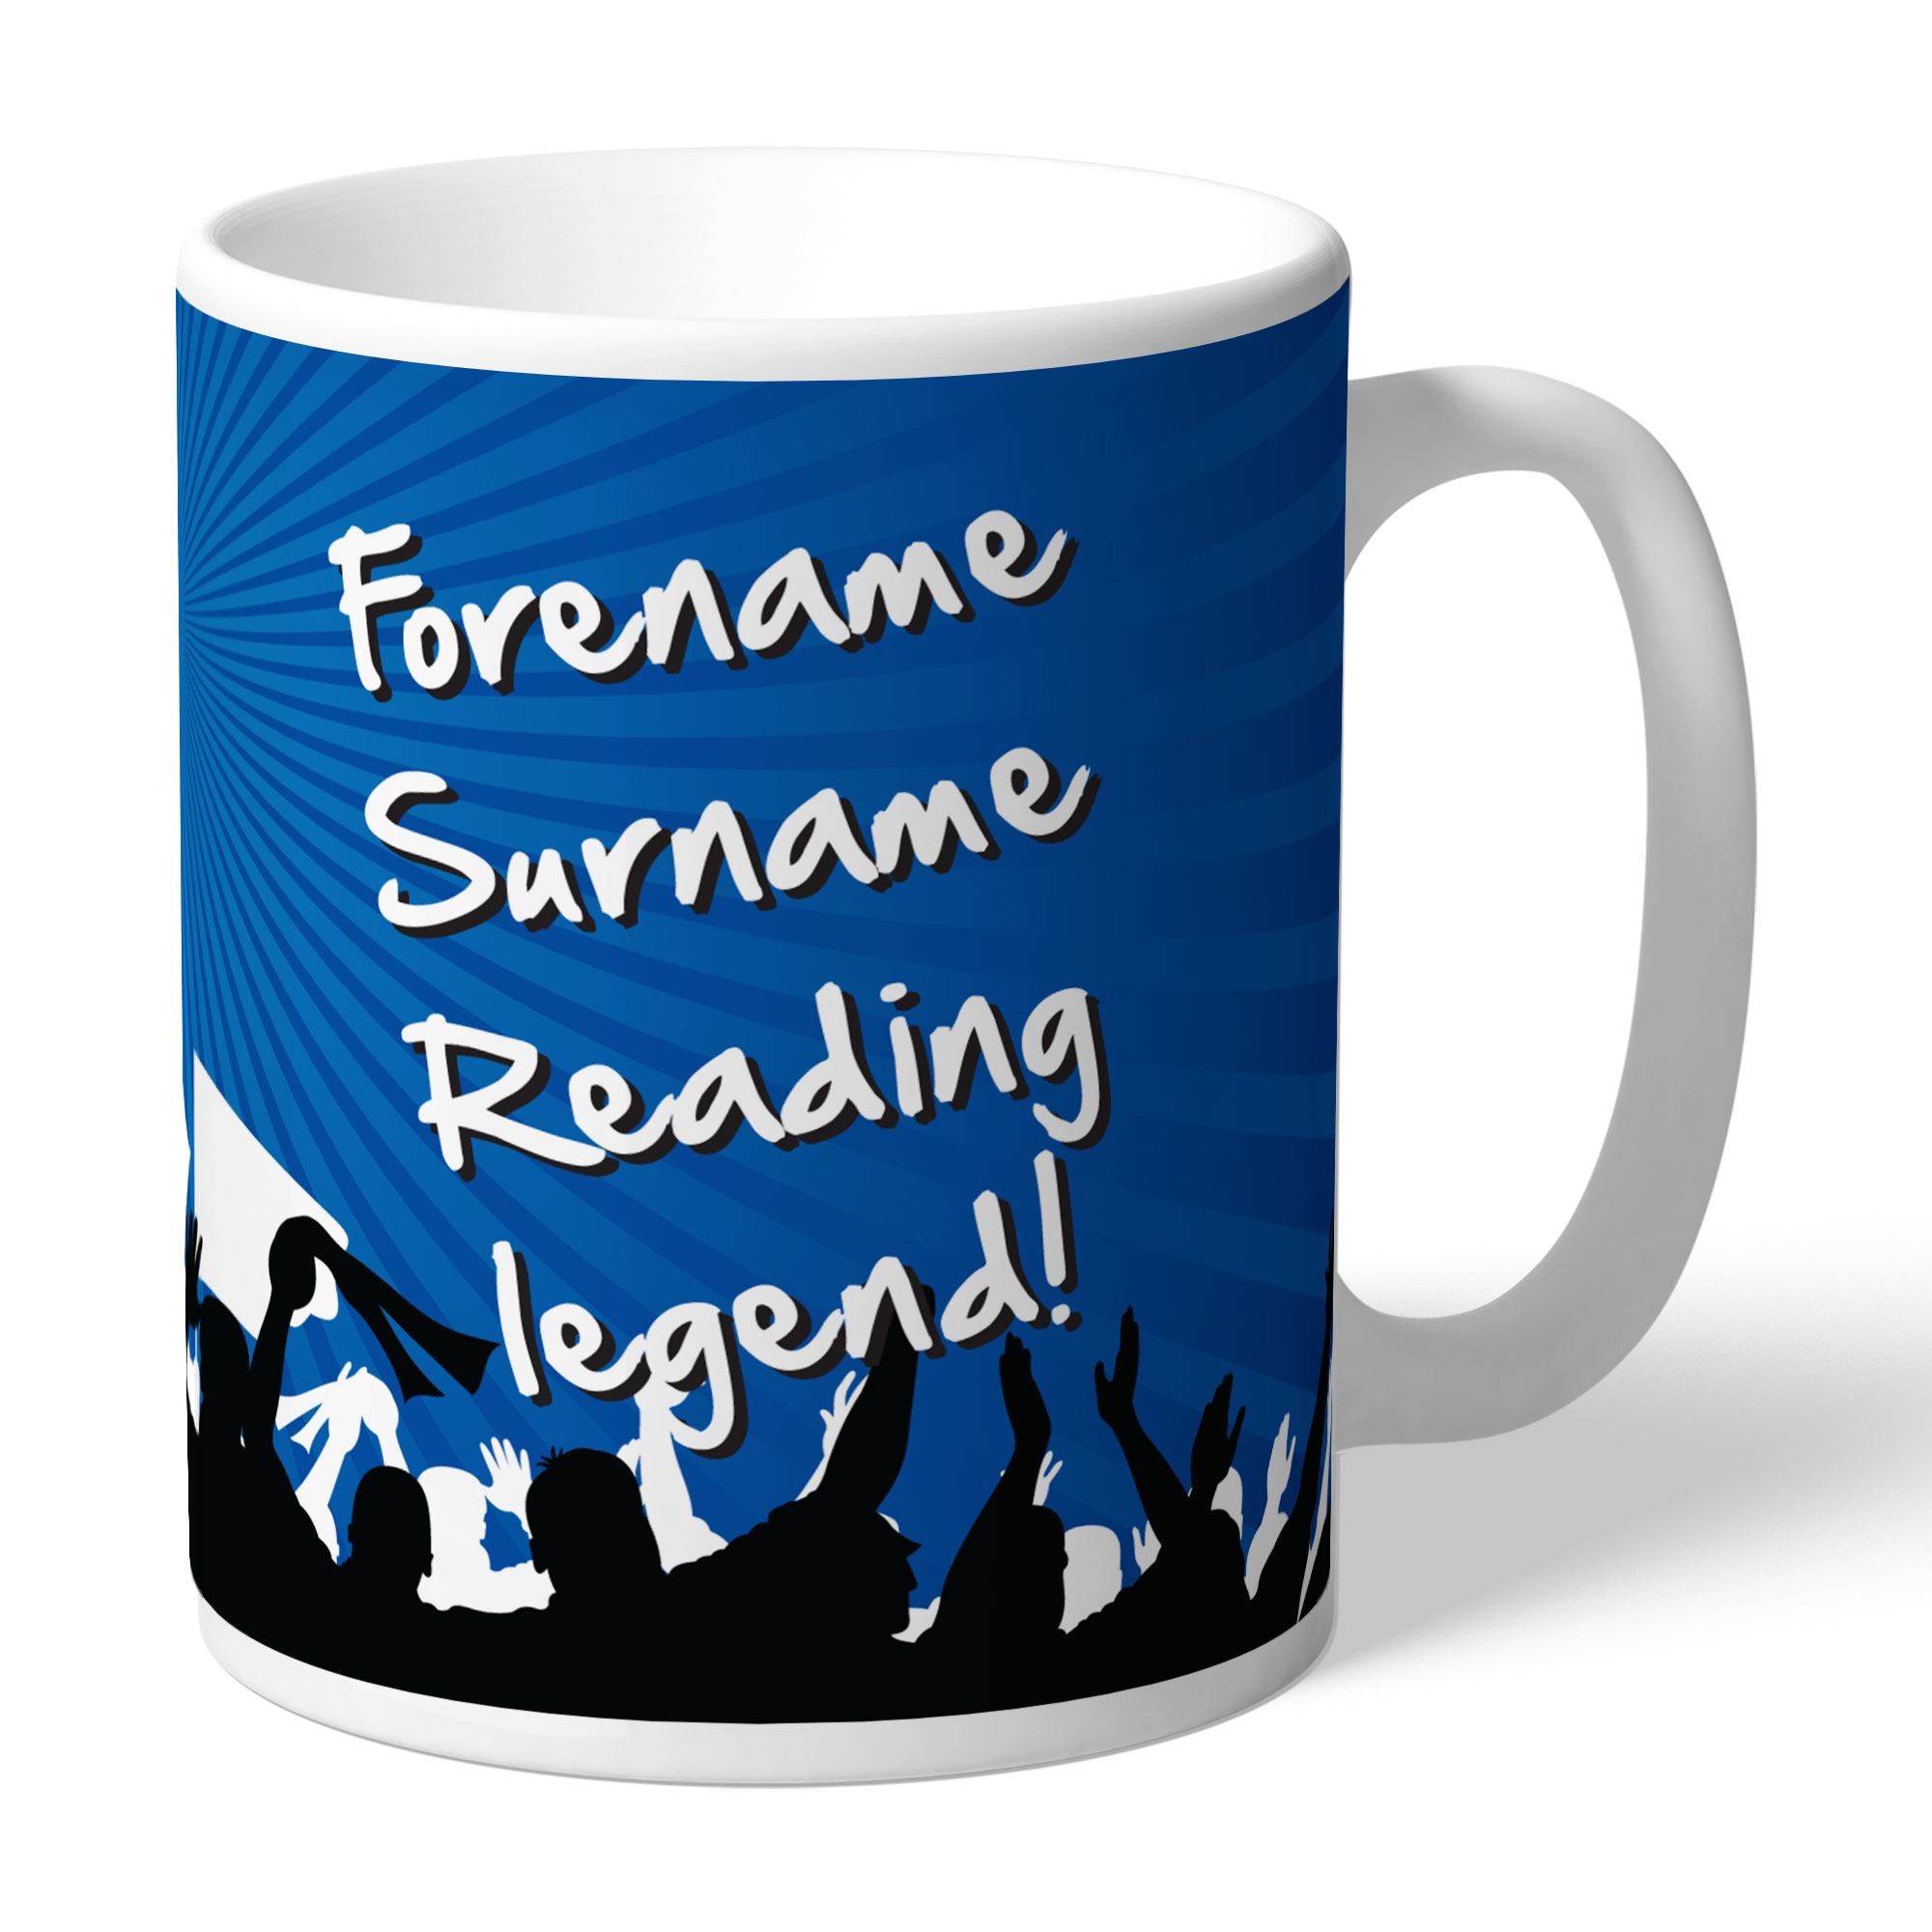 Reading FC Legend Mug